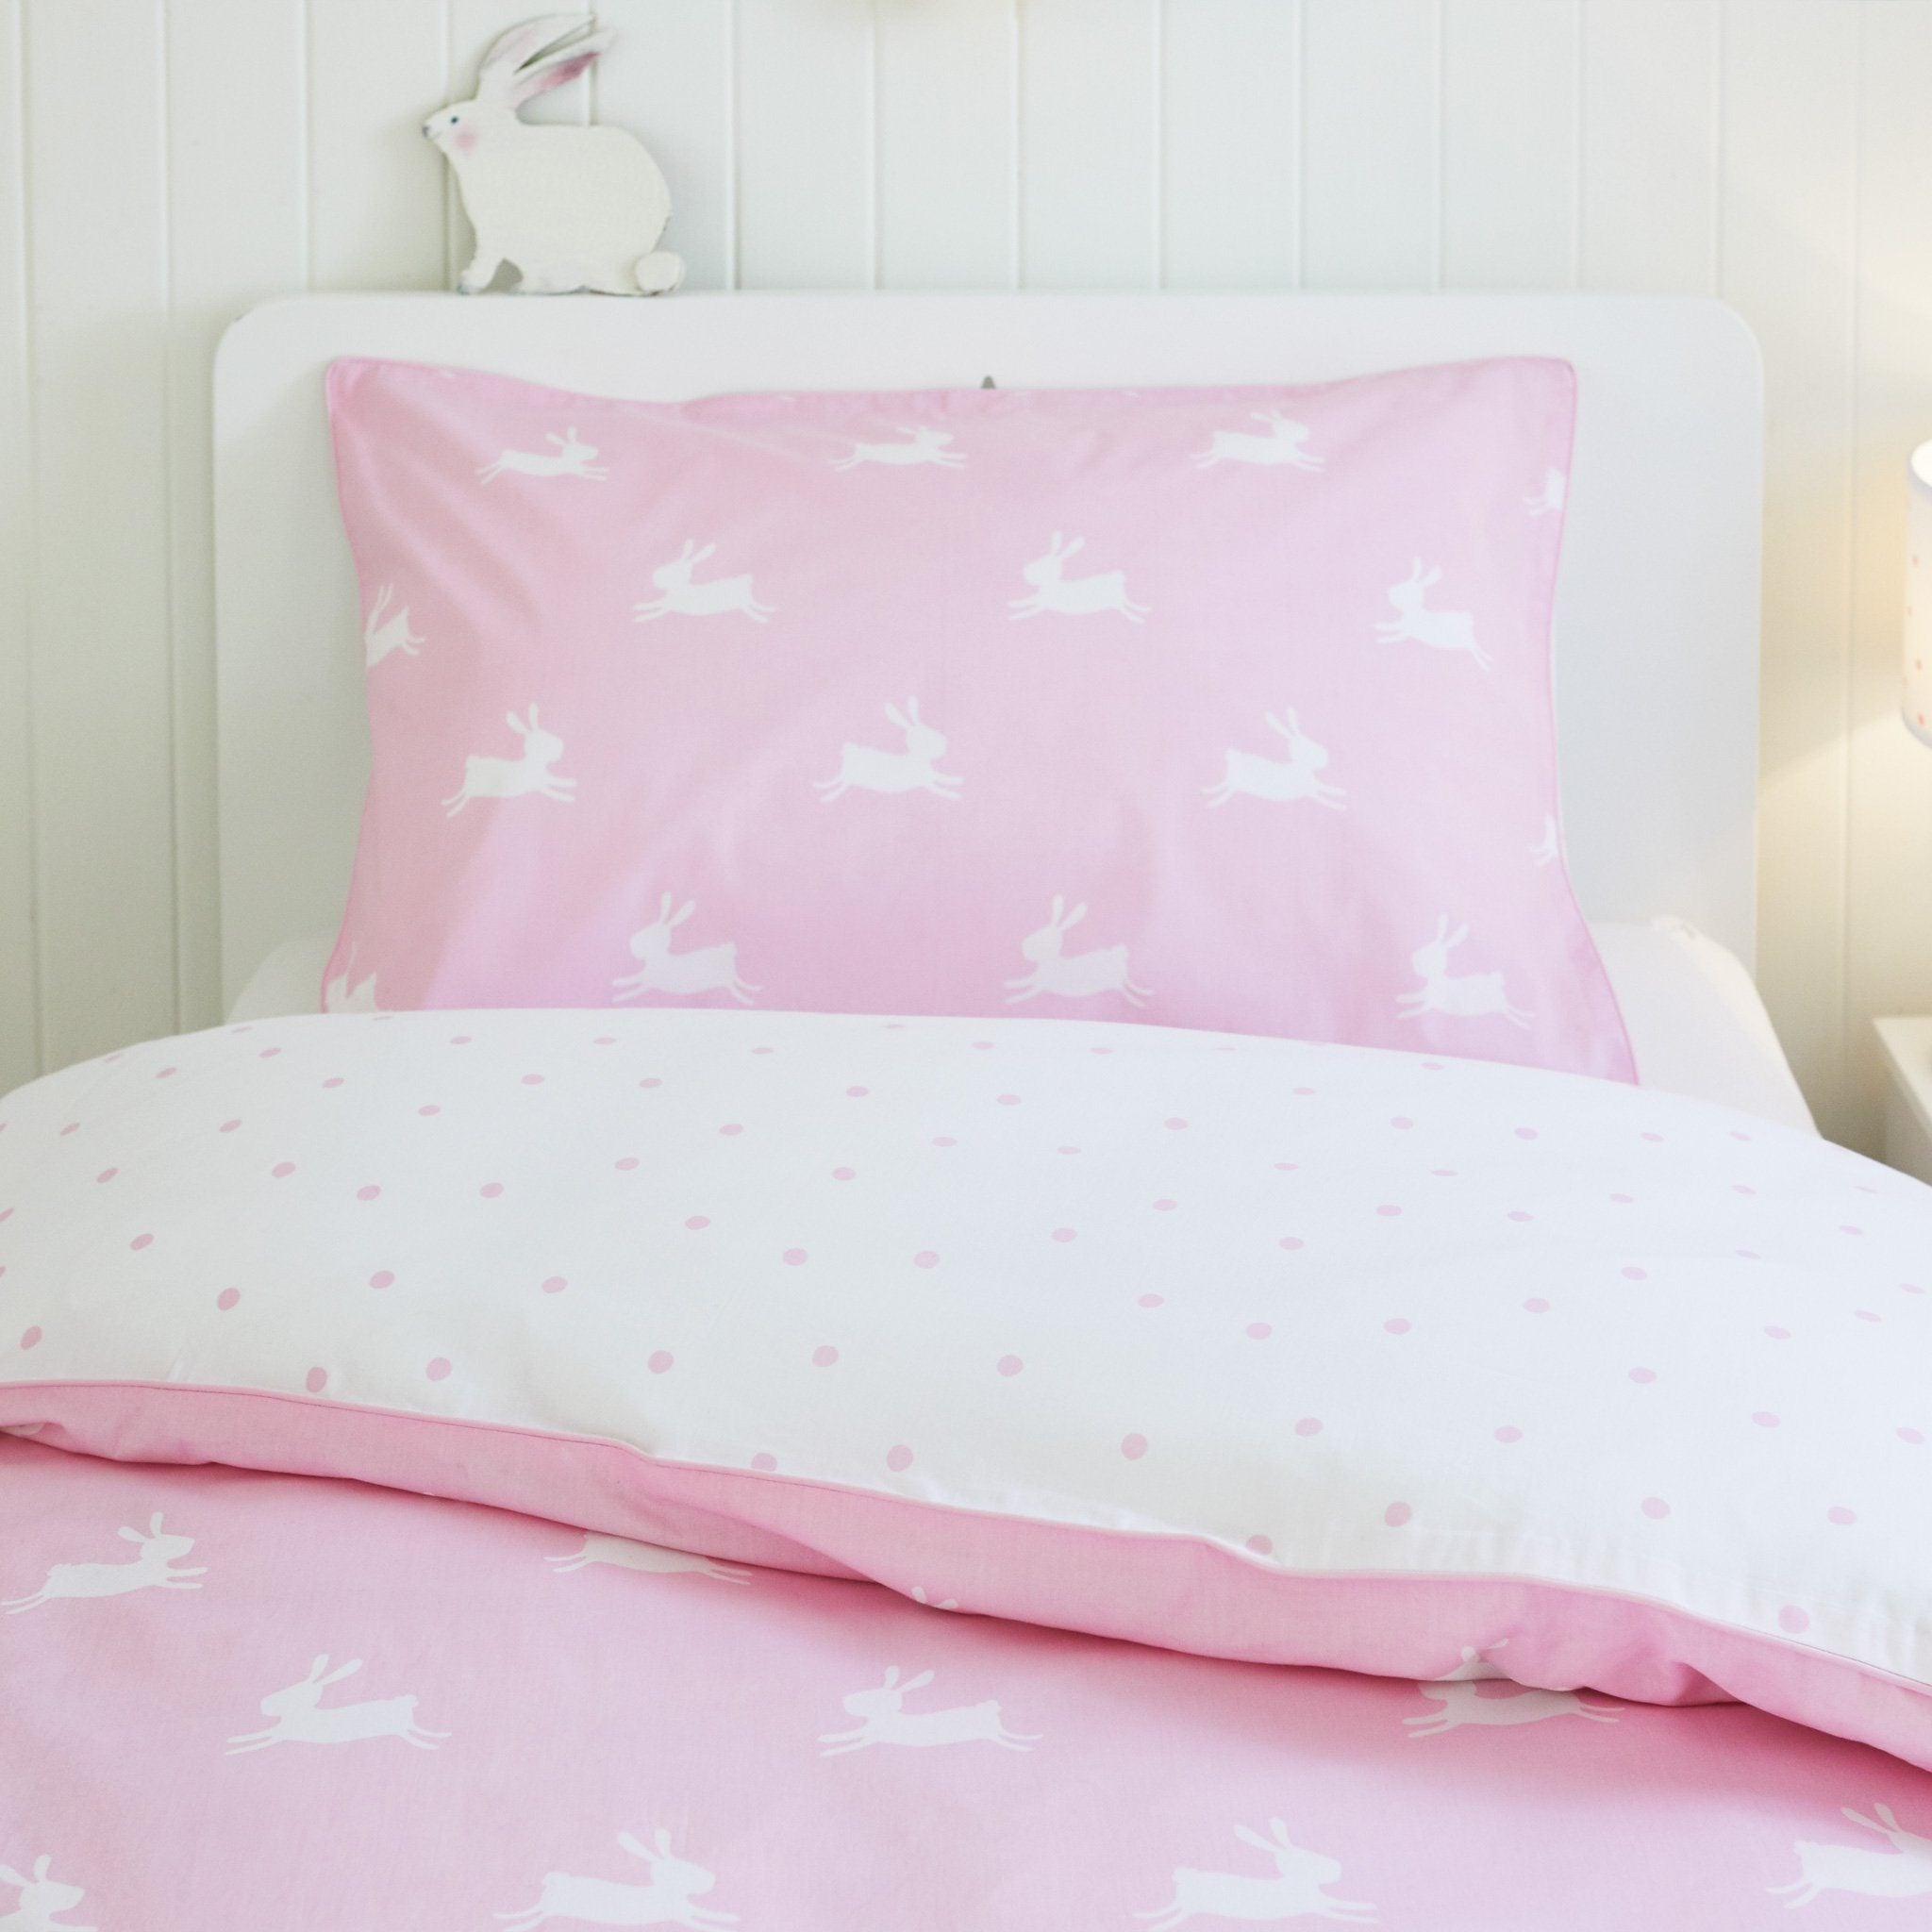 covers trading set bunny hop products co duvet pink cover great single little